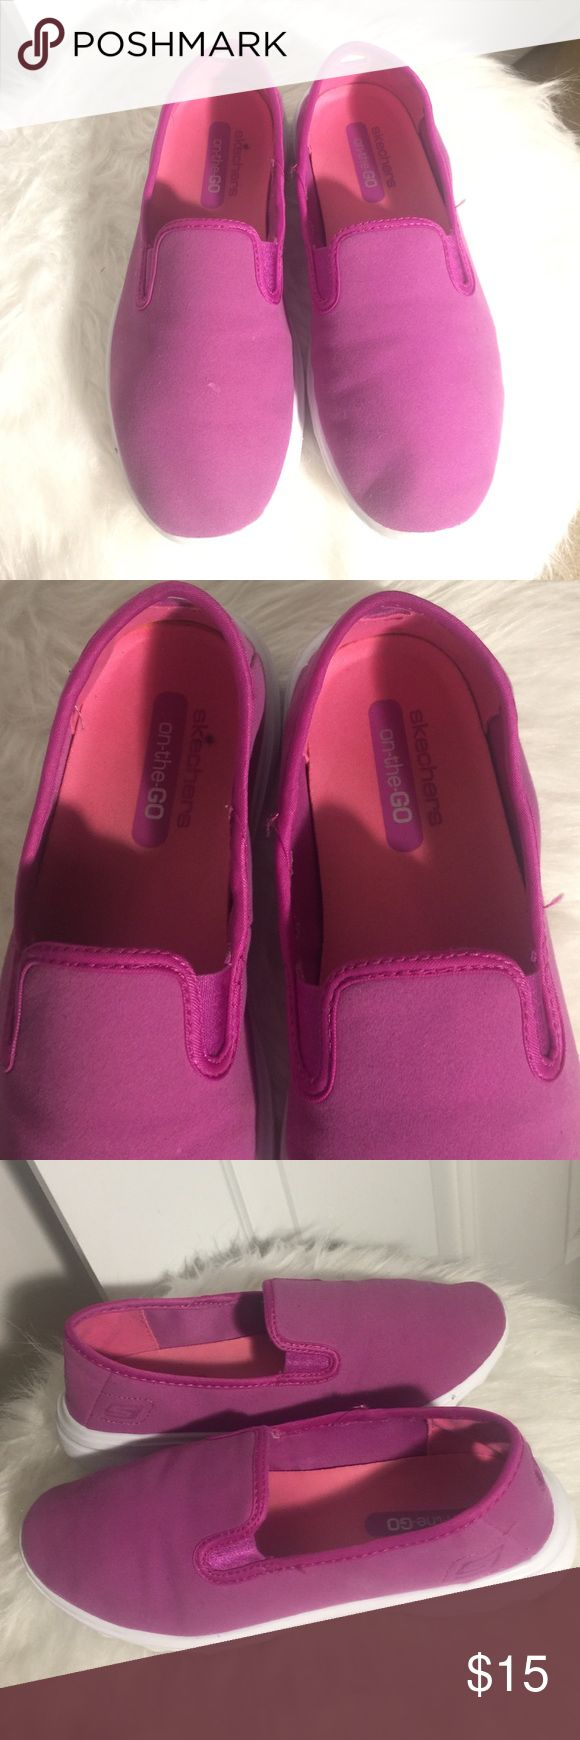 LILAC SKECHERS On-the-GO SIZE US6 GREAT CONDITION PRE-LOVED SKECHERS ON THE GO IN EXCELLENT CONDITION, VERY CLEAN, NO SMELLS, VERY LIGHTLY USED AS YOU CAN SEE THE SOULS ARE LIKE BRAND NEW. 🤑OPEN TO ALL OFFERS🤑 Skechers Shoes Sneakers